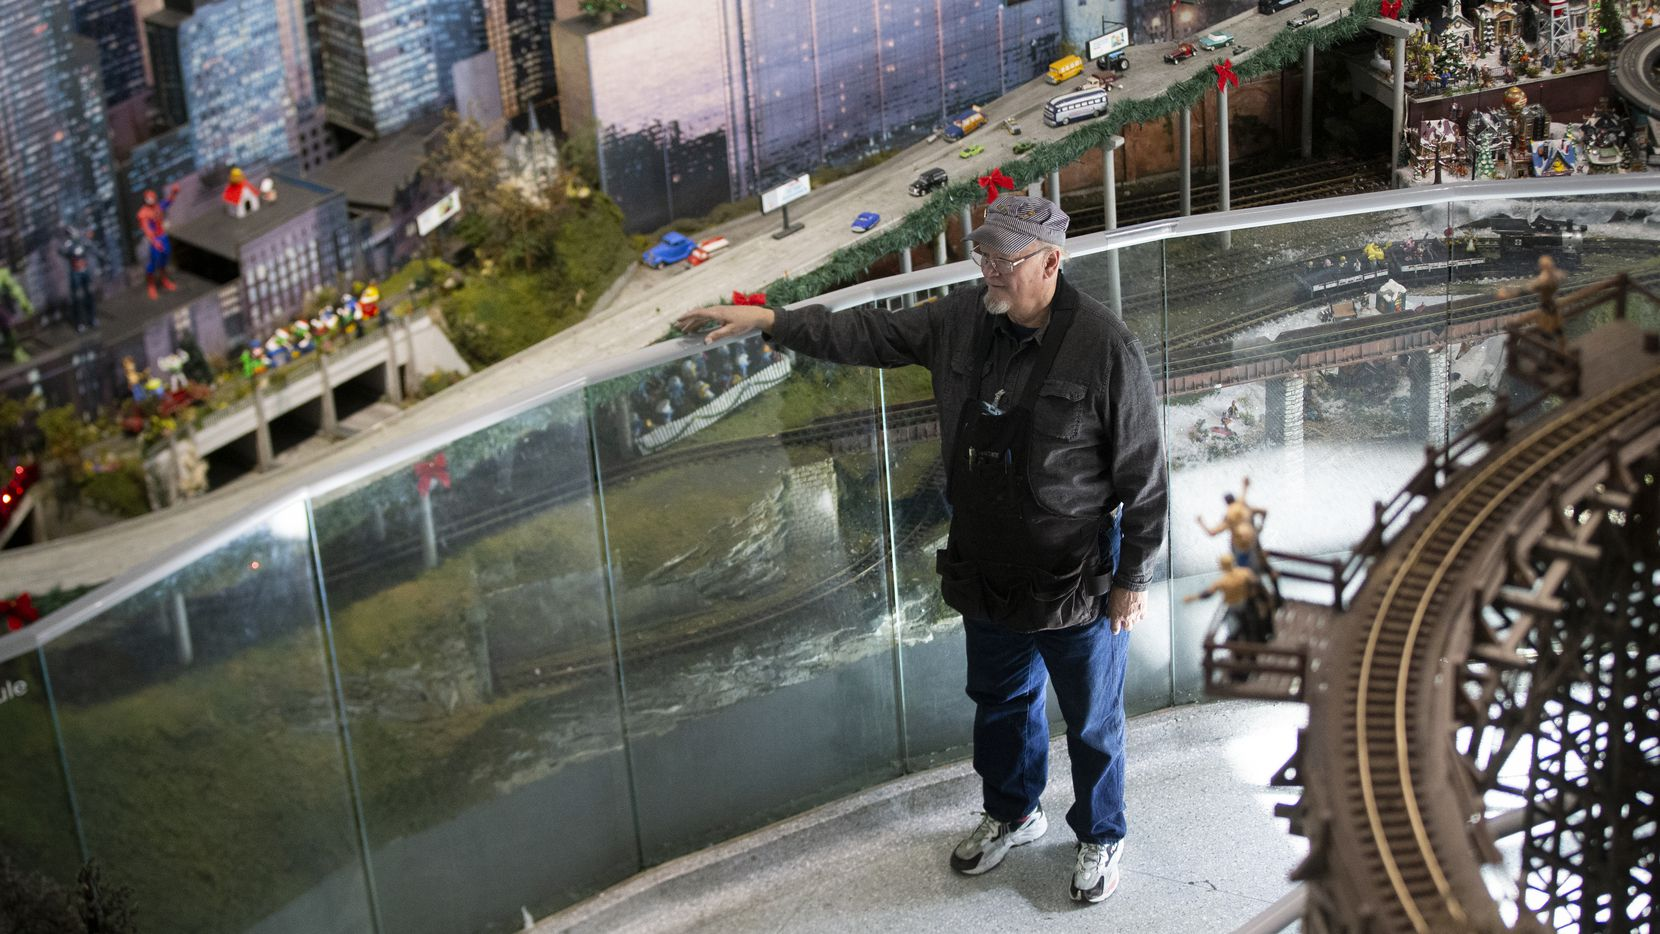 """Felder Fitzgerald, the """"train engineer"""" at Children's Medical Center, looks over the display in Dallas. Fitzgerald has kept the trains running for over 30 years."""